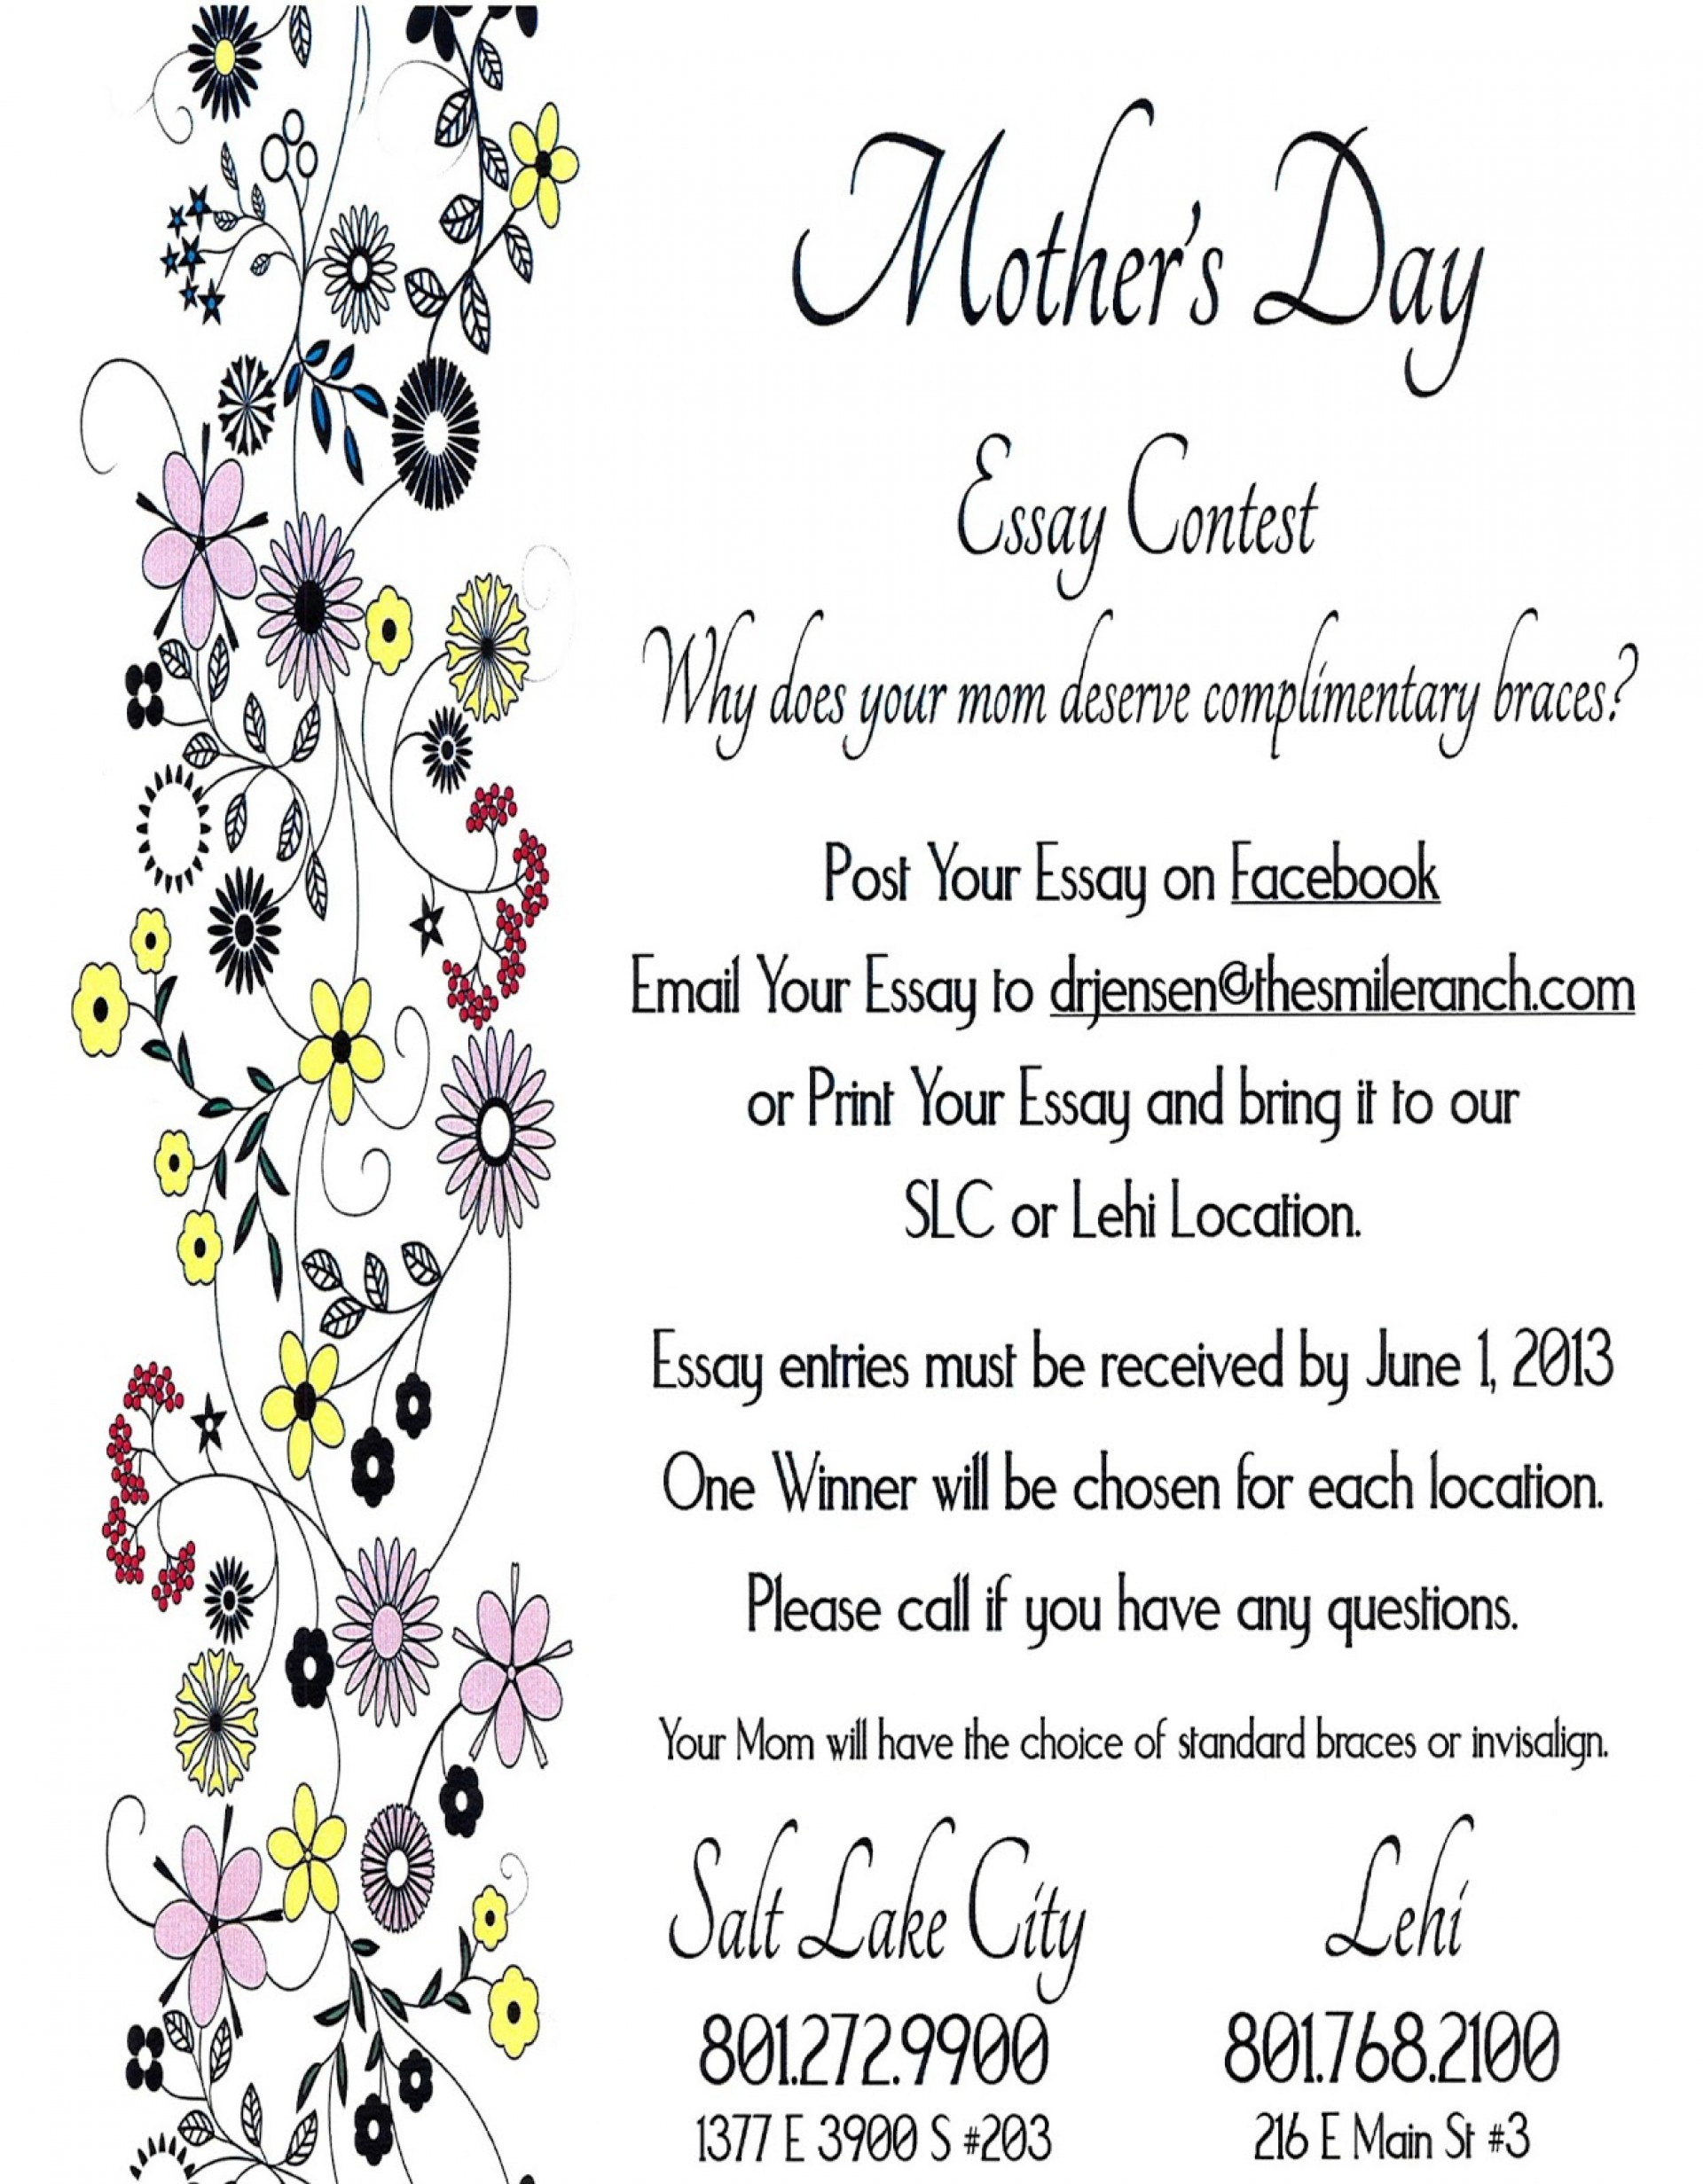 001 Mothersdaycontest Essay Example Mothers Top Day Mother's In Tamil Writing Contest 2018 1920